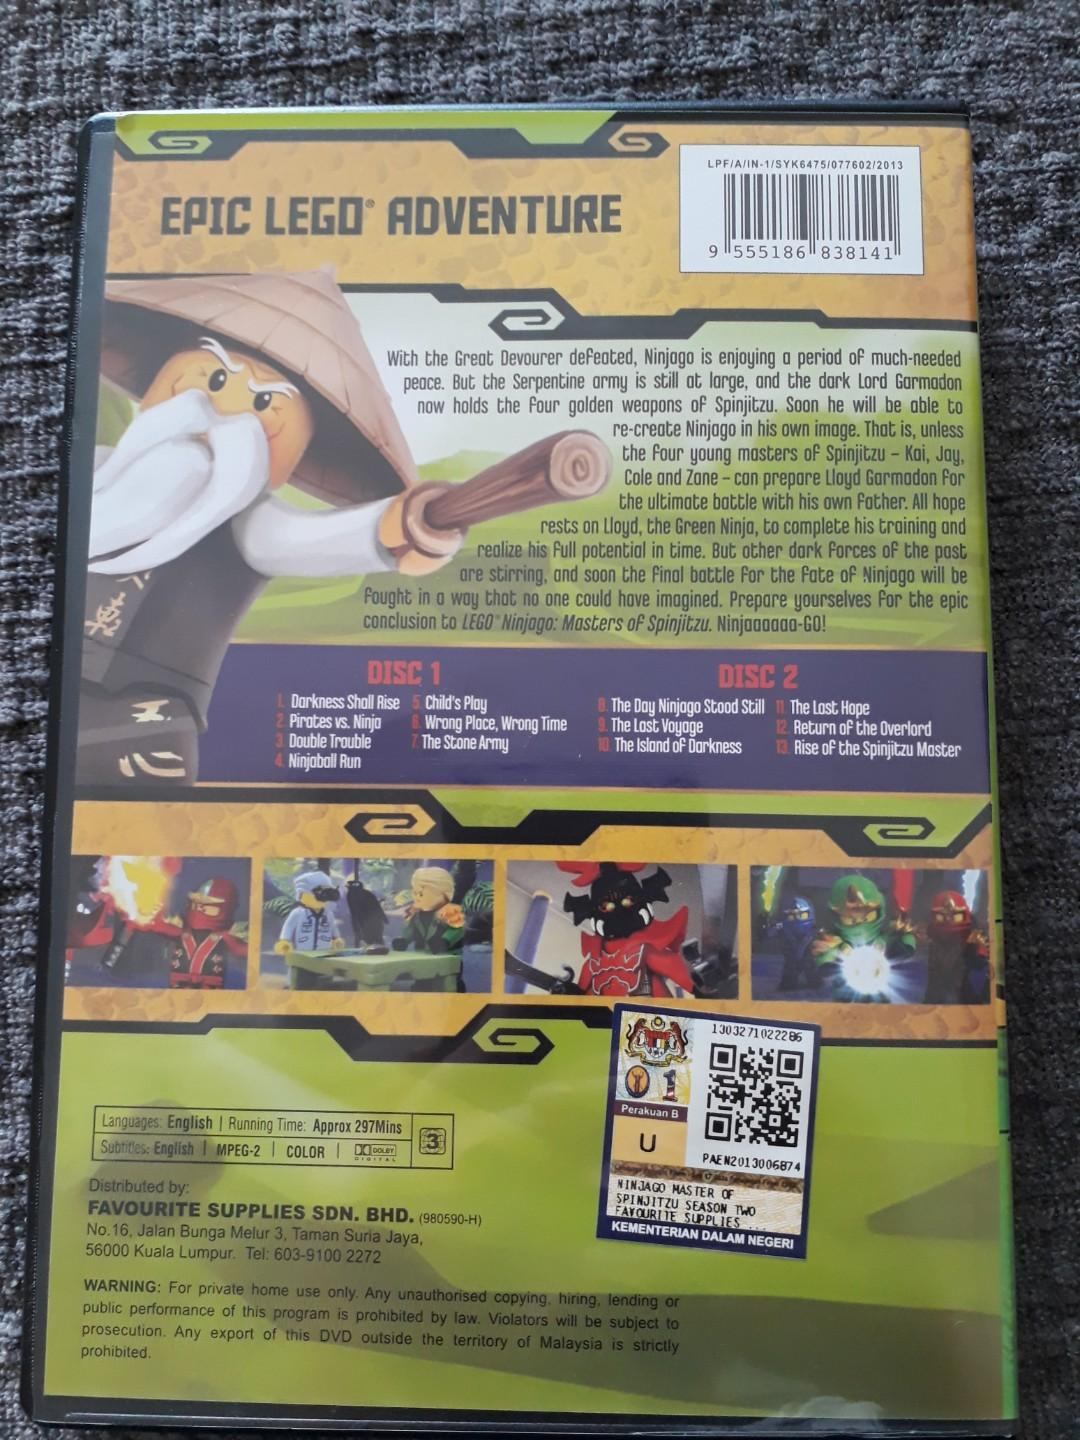 Lego Ninjago Season 2 DVD, Music & Media, CDs, DVDs & Other